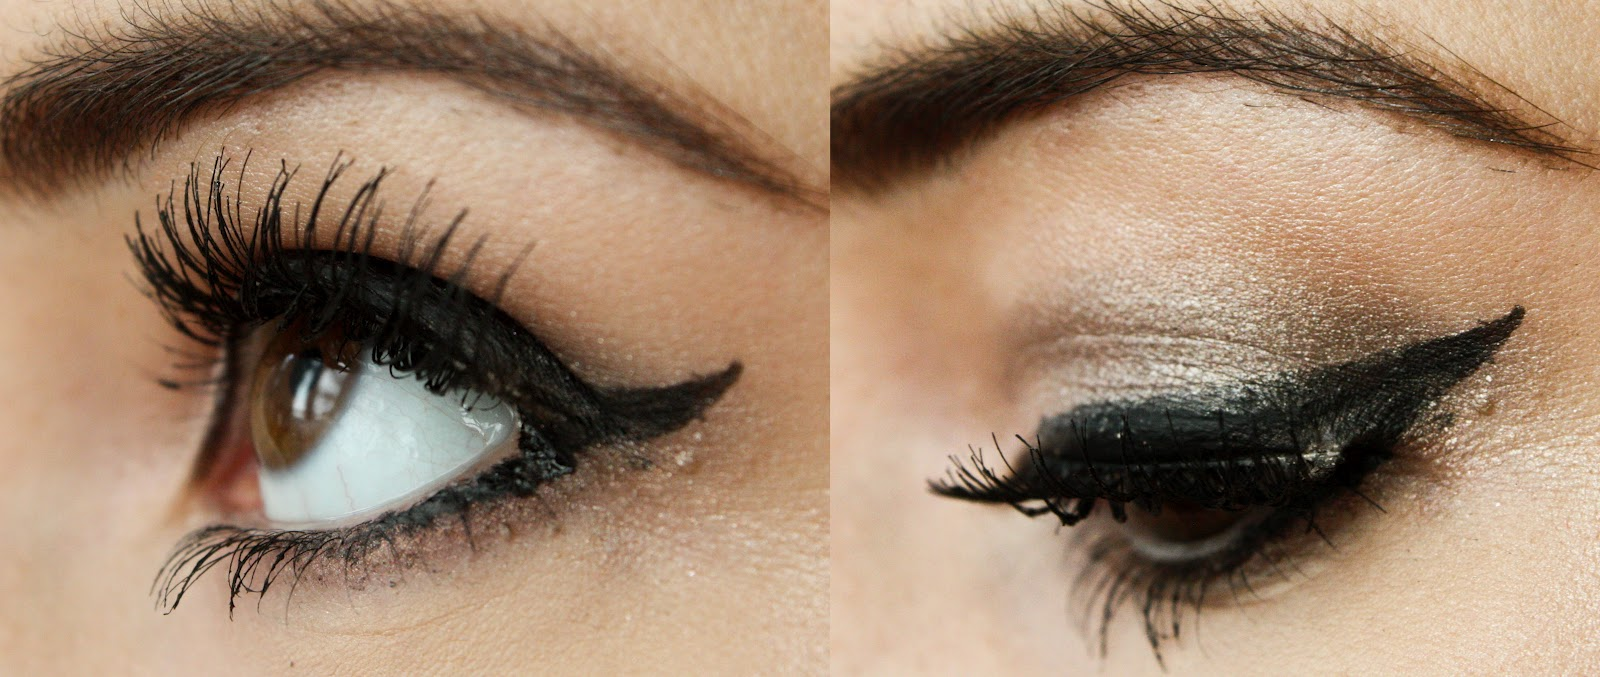 tutorial tutorial strip natural lancome lashes makeup evening eyelashes makeup review  tutorial II.jpg